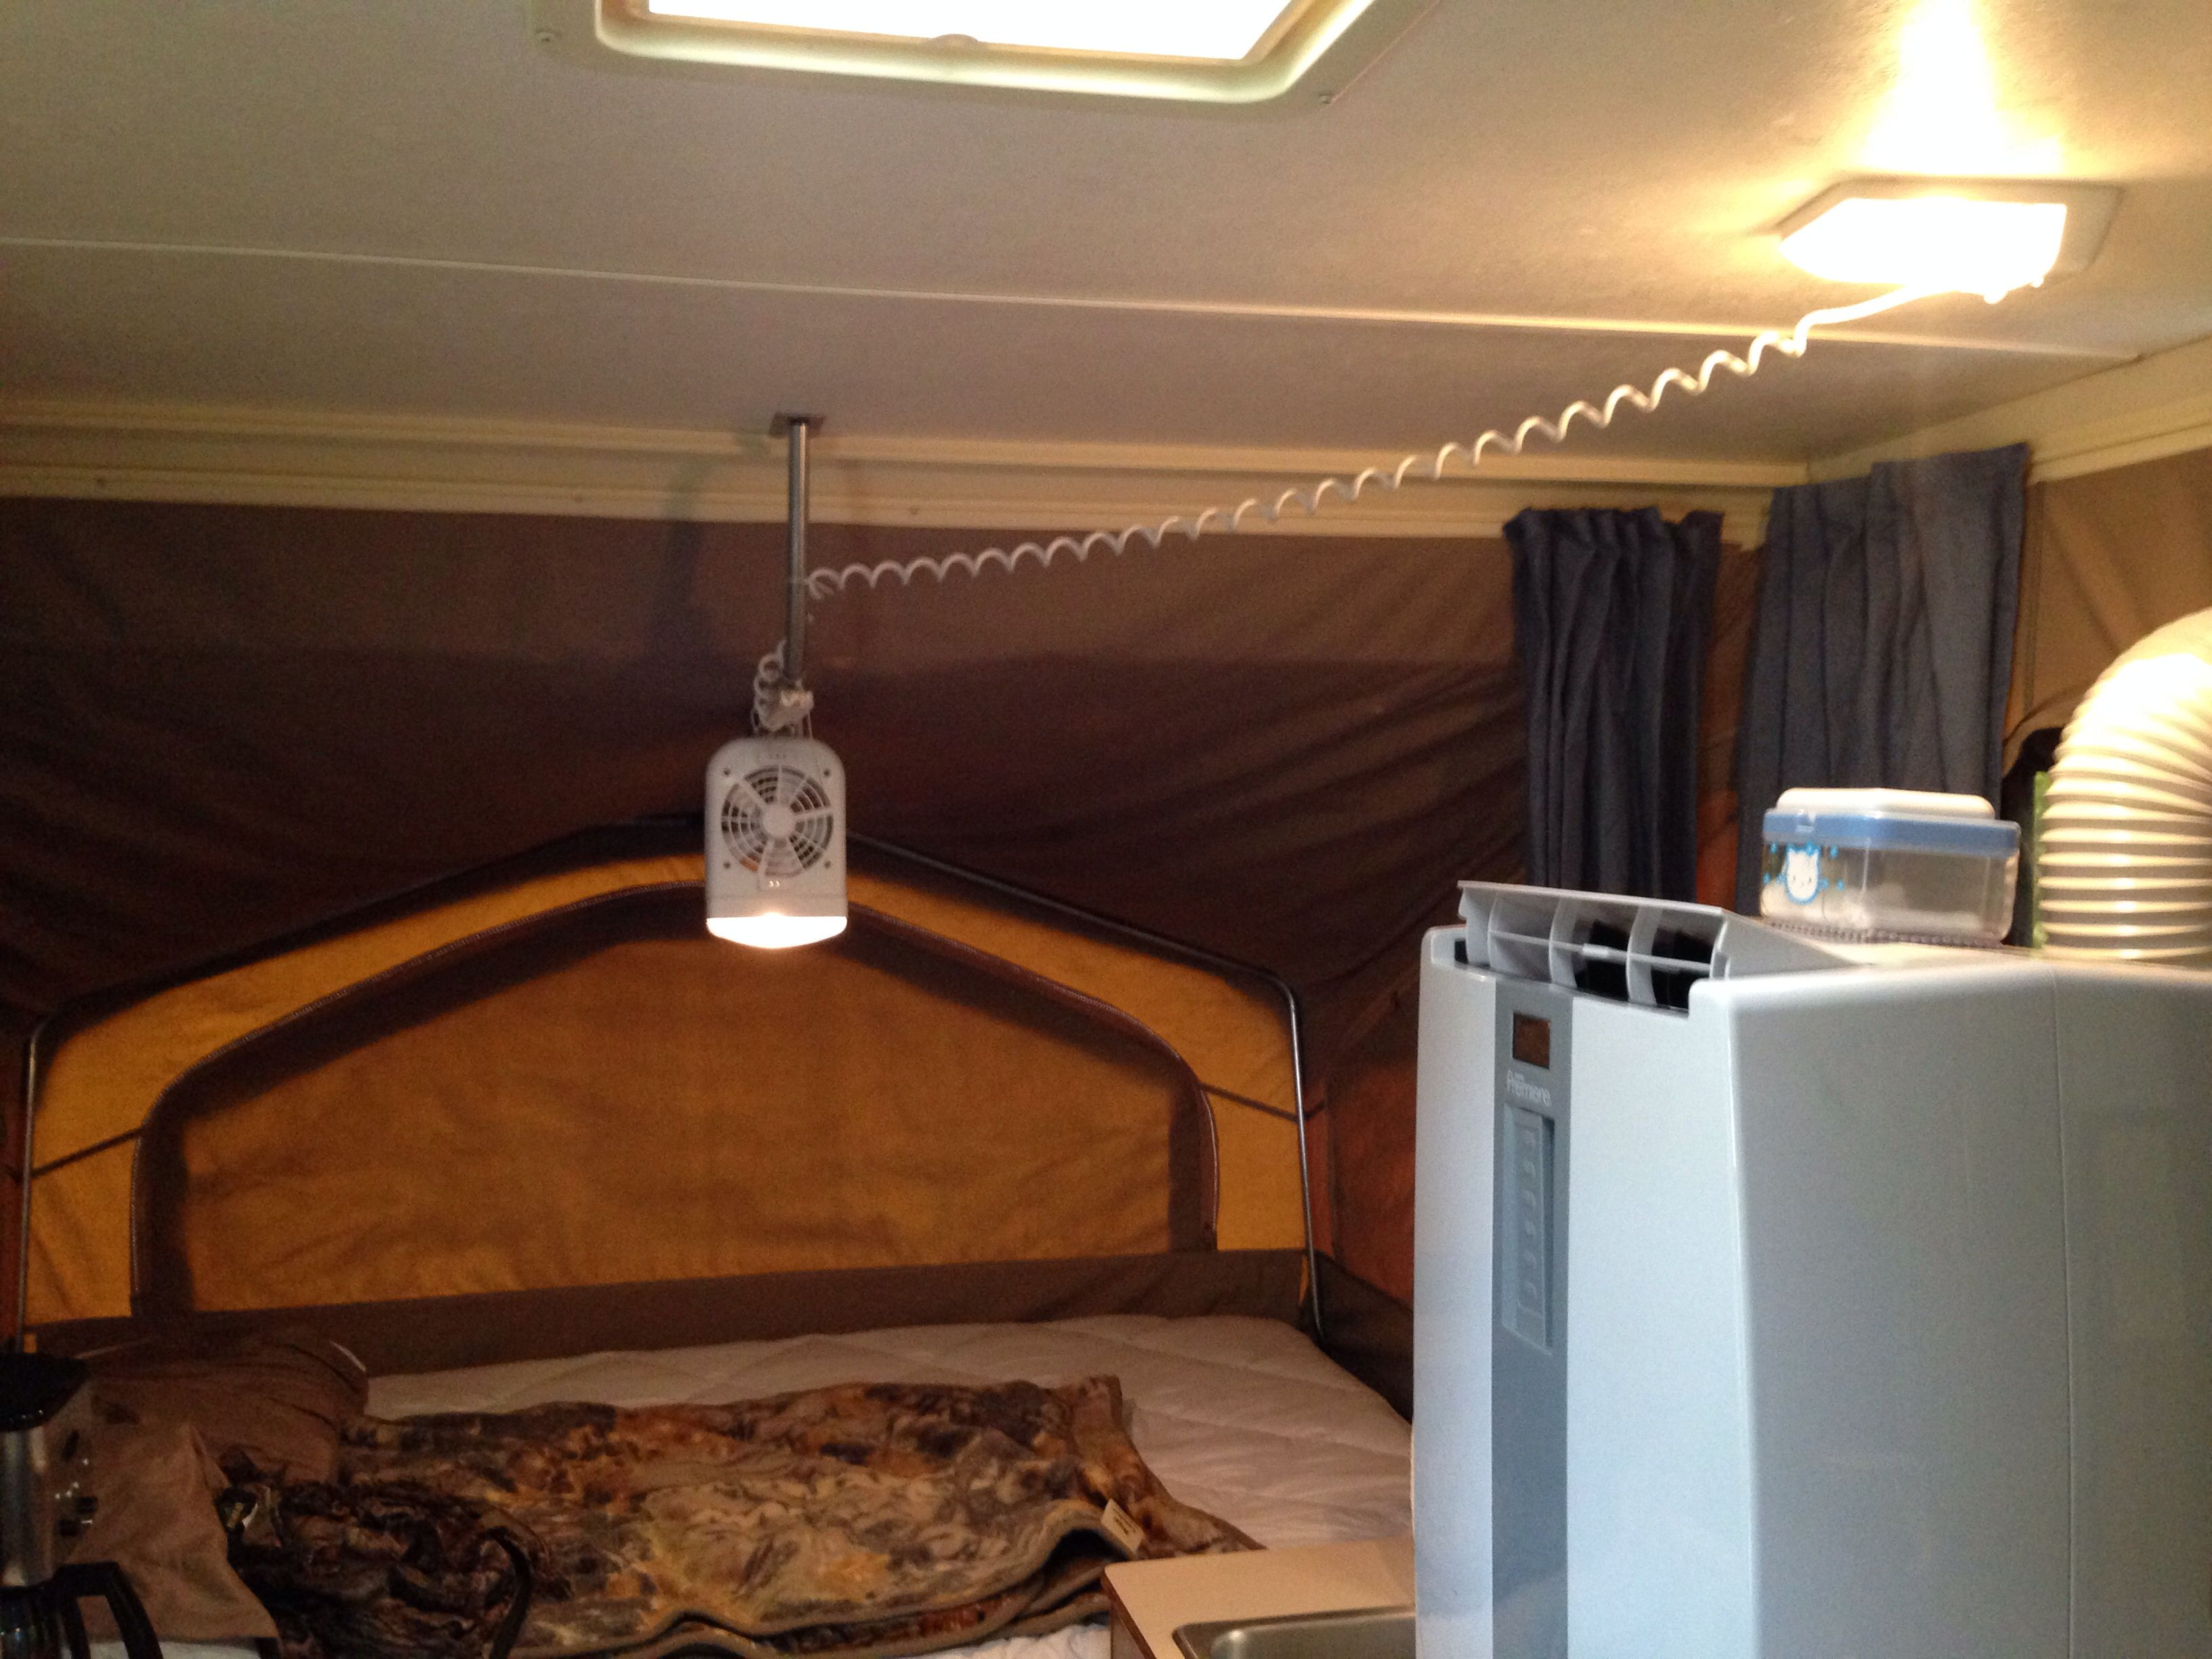 I Replaced My Old Interior Lights With New Ones That Were Capable Of Receiving The Plug From The Bunk And Lights Fan Popup Camper Best Mods Interior Lighting